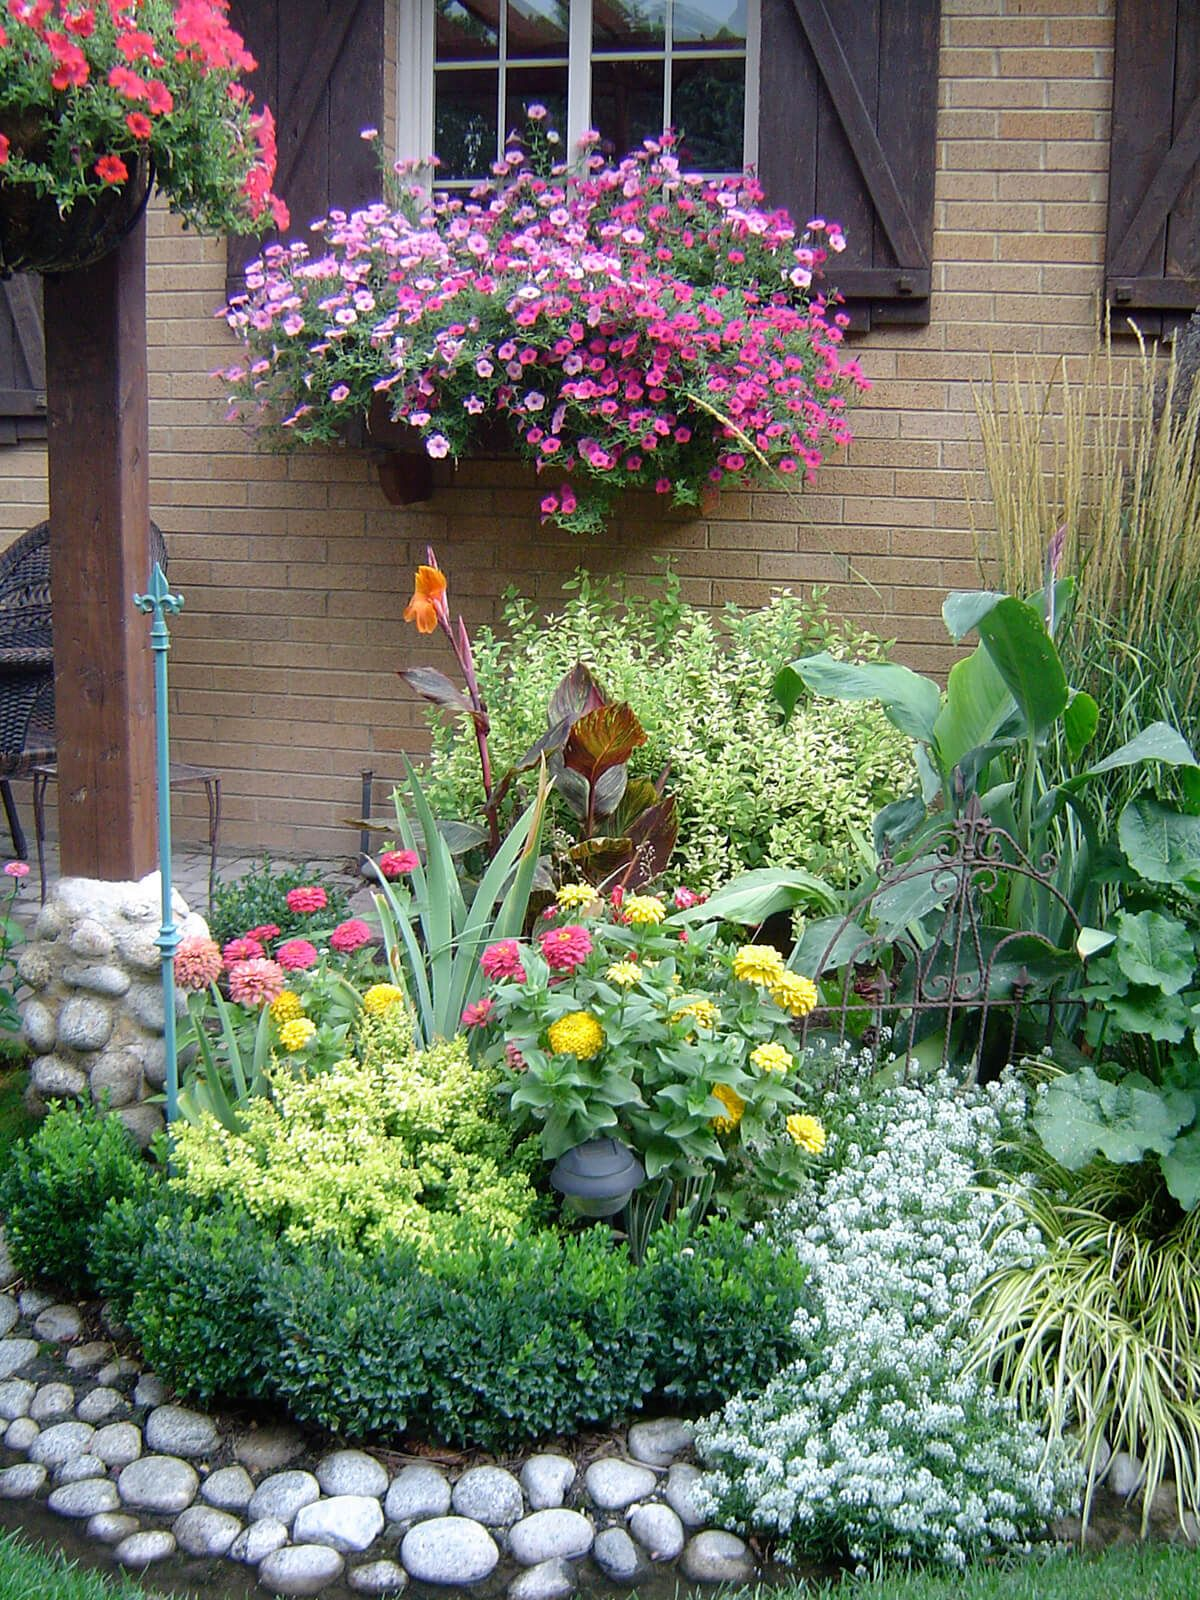 27 Gorgeous and Creative Flower Bed Ideas to Try | Rock flower beds ...